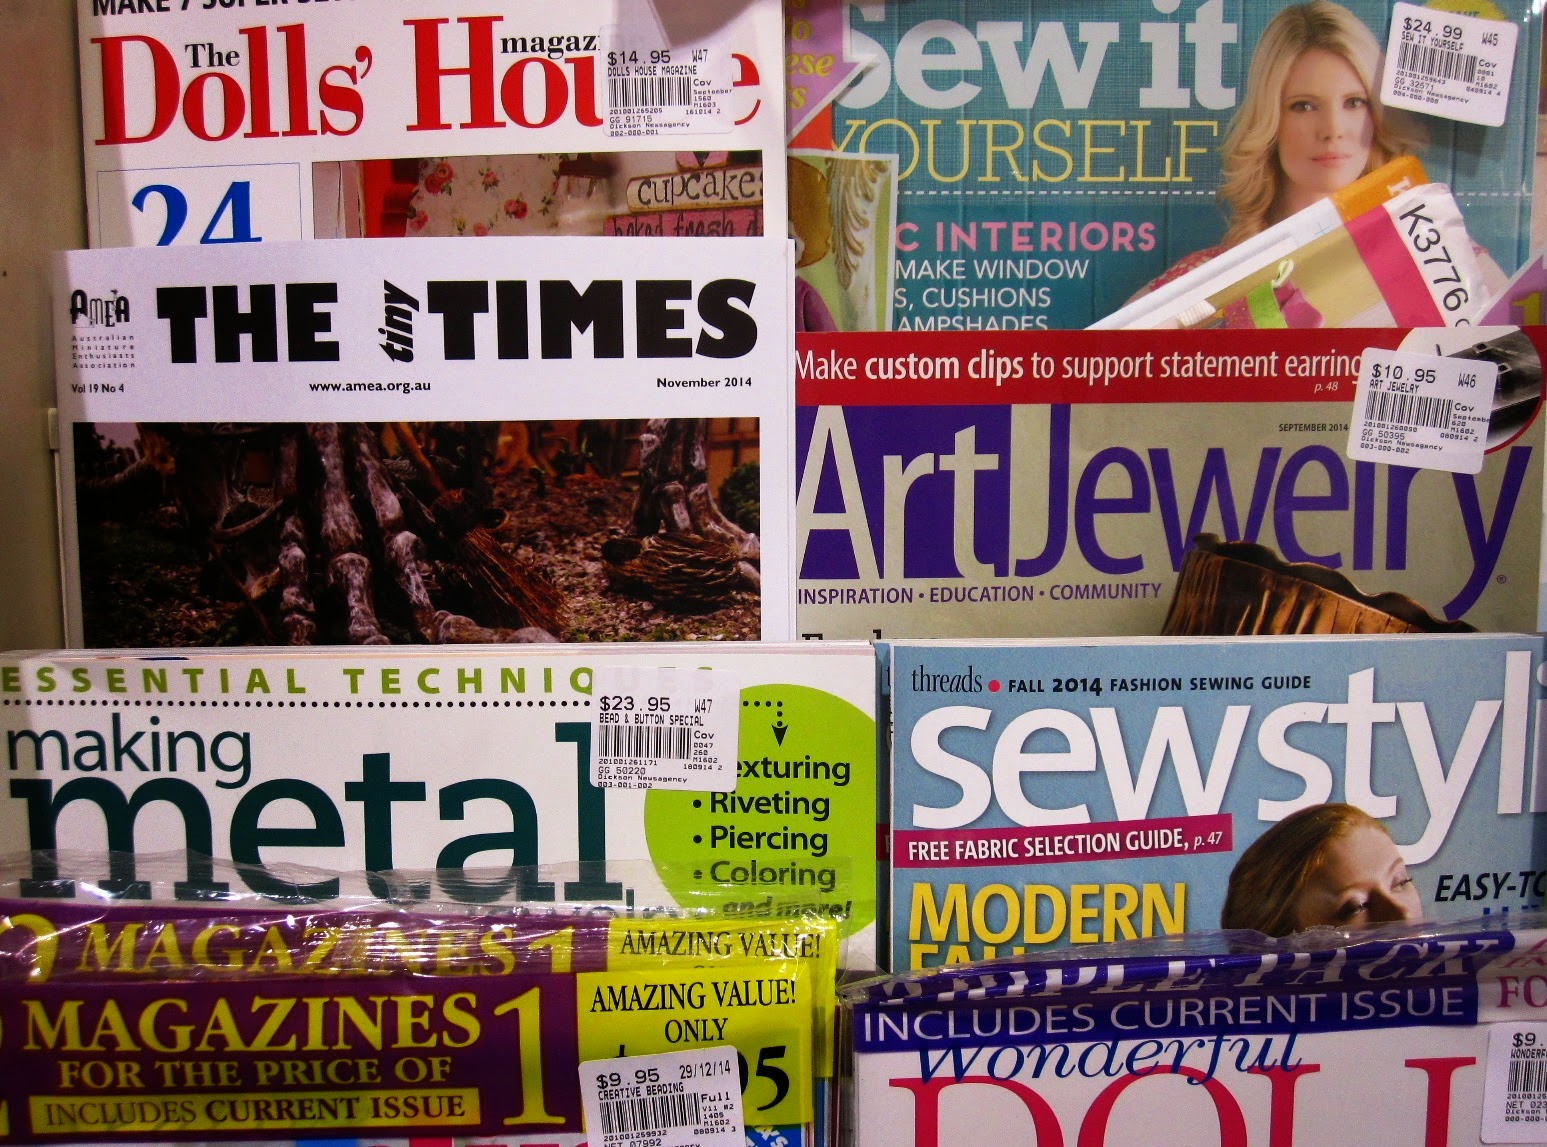 November issue of The tiny Times, displayed amongst the magazines at a newsagents.